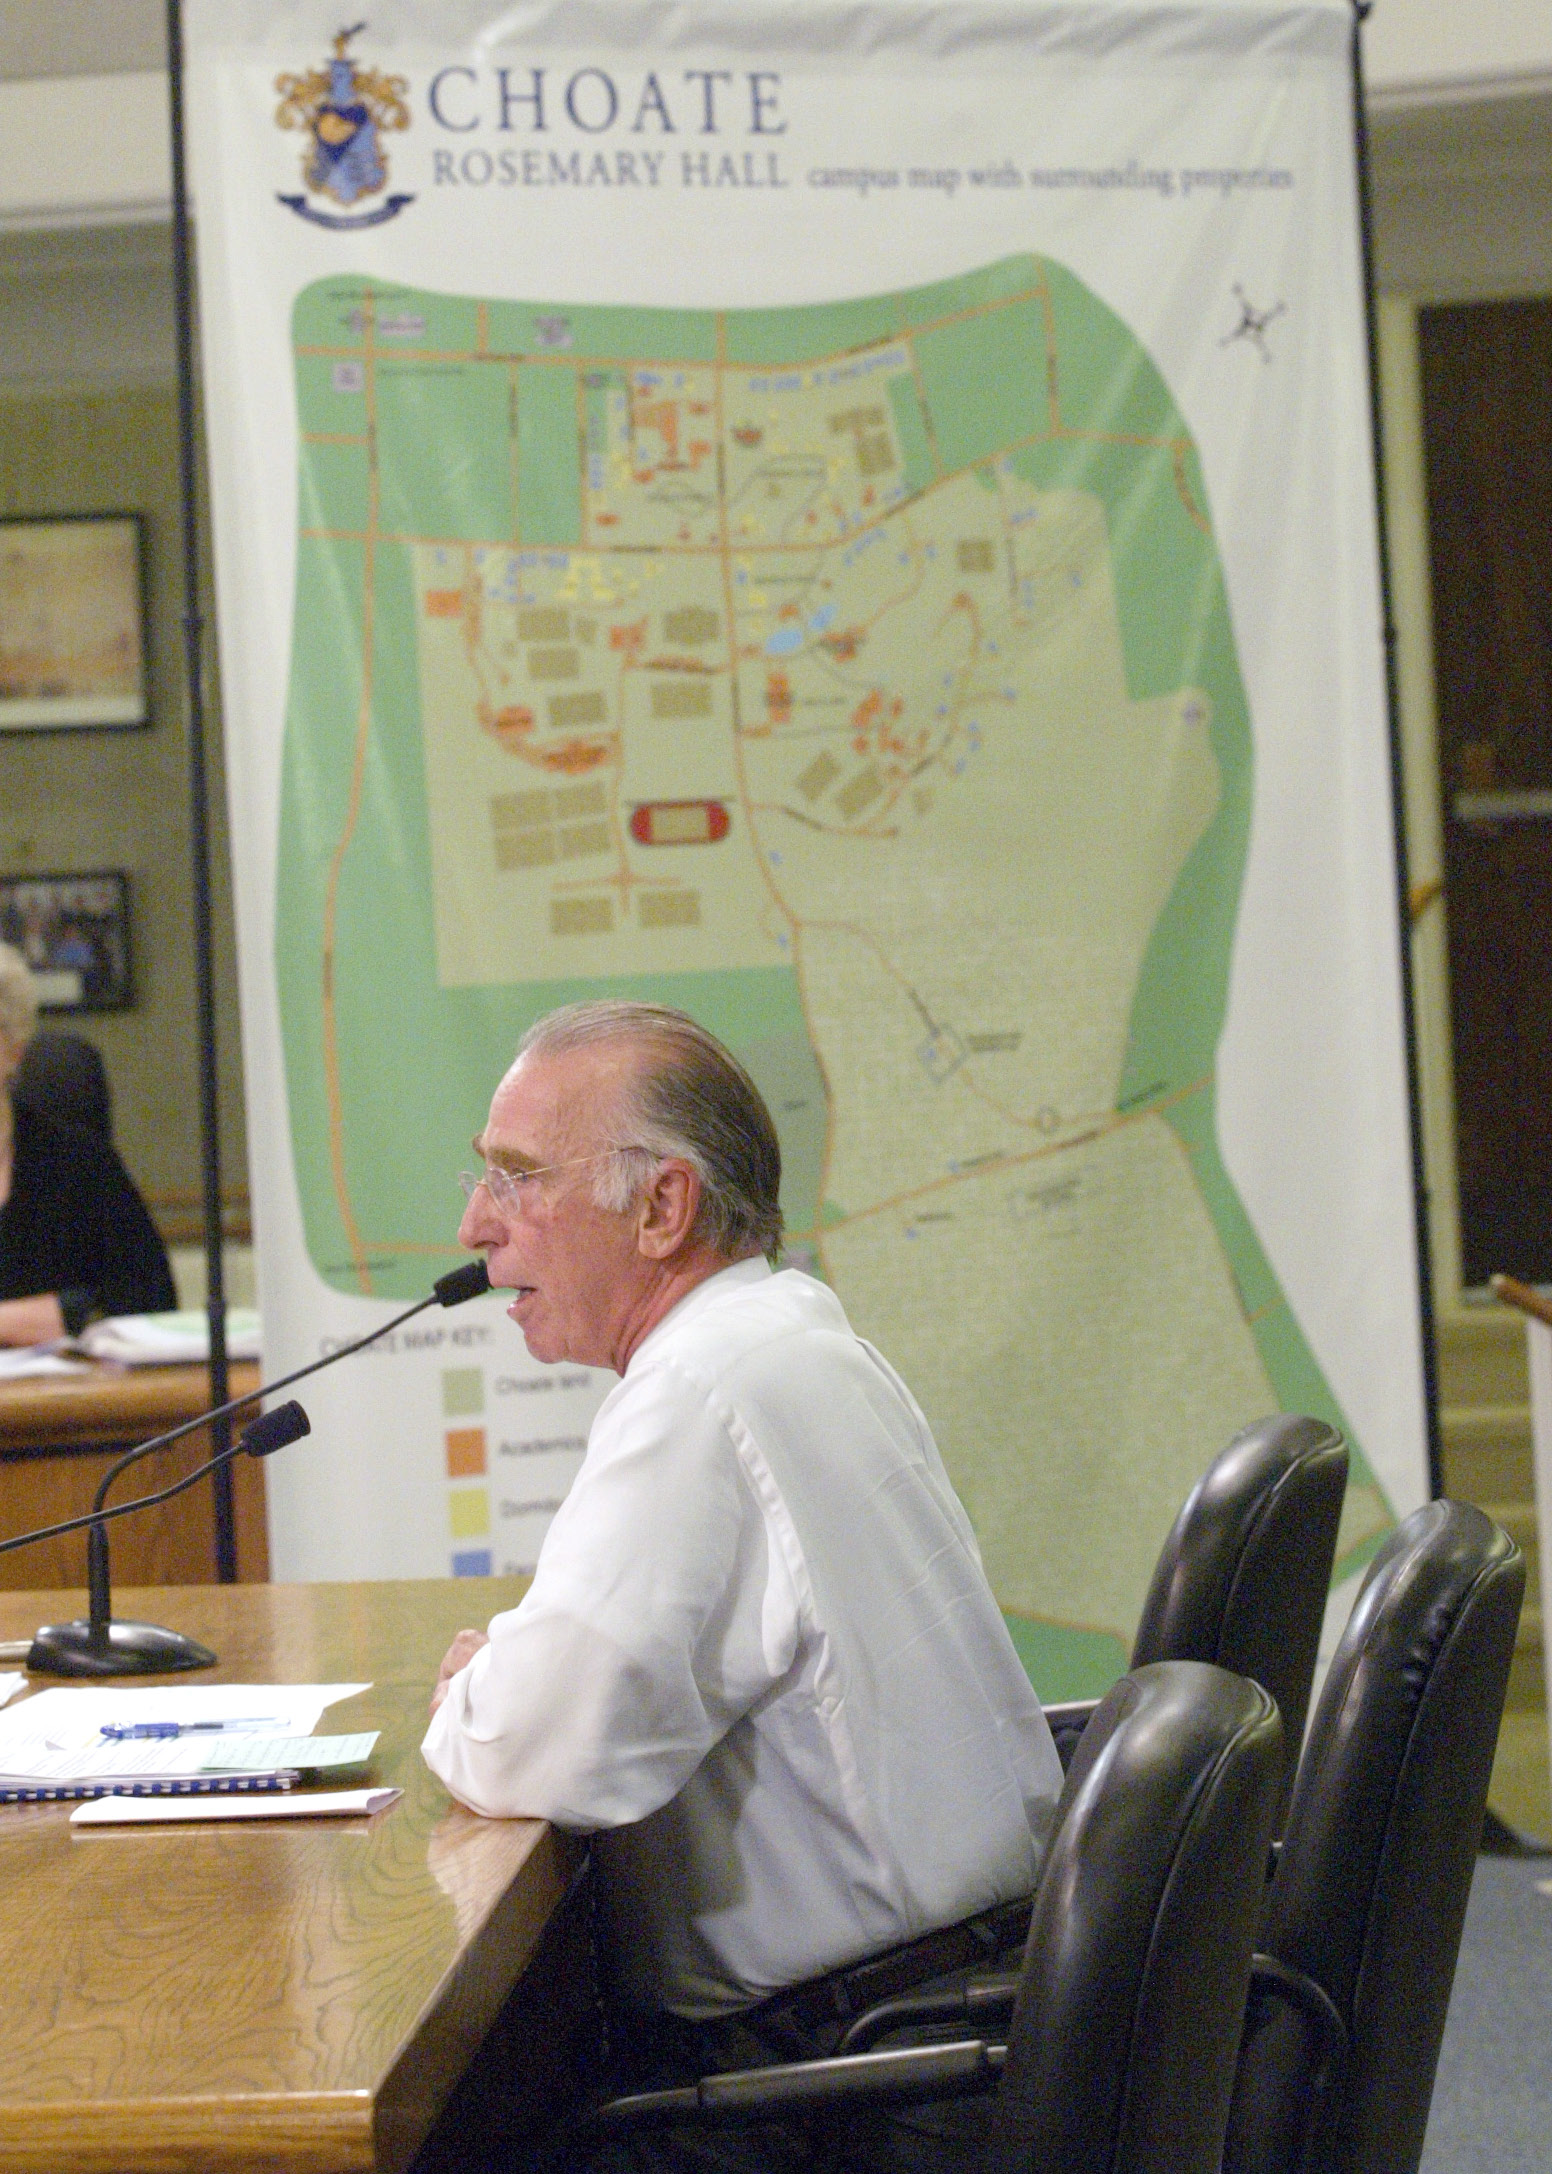 File photo -  June 23, 2009 - Choate Rosemary Hall Headmaster Edward Shanahan gives a presentation to the Wlfd town council at Wallingford Town Hall about Choate acquiring a portion of Old Durham Road.